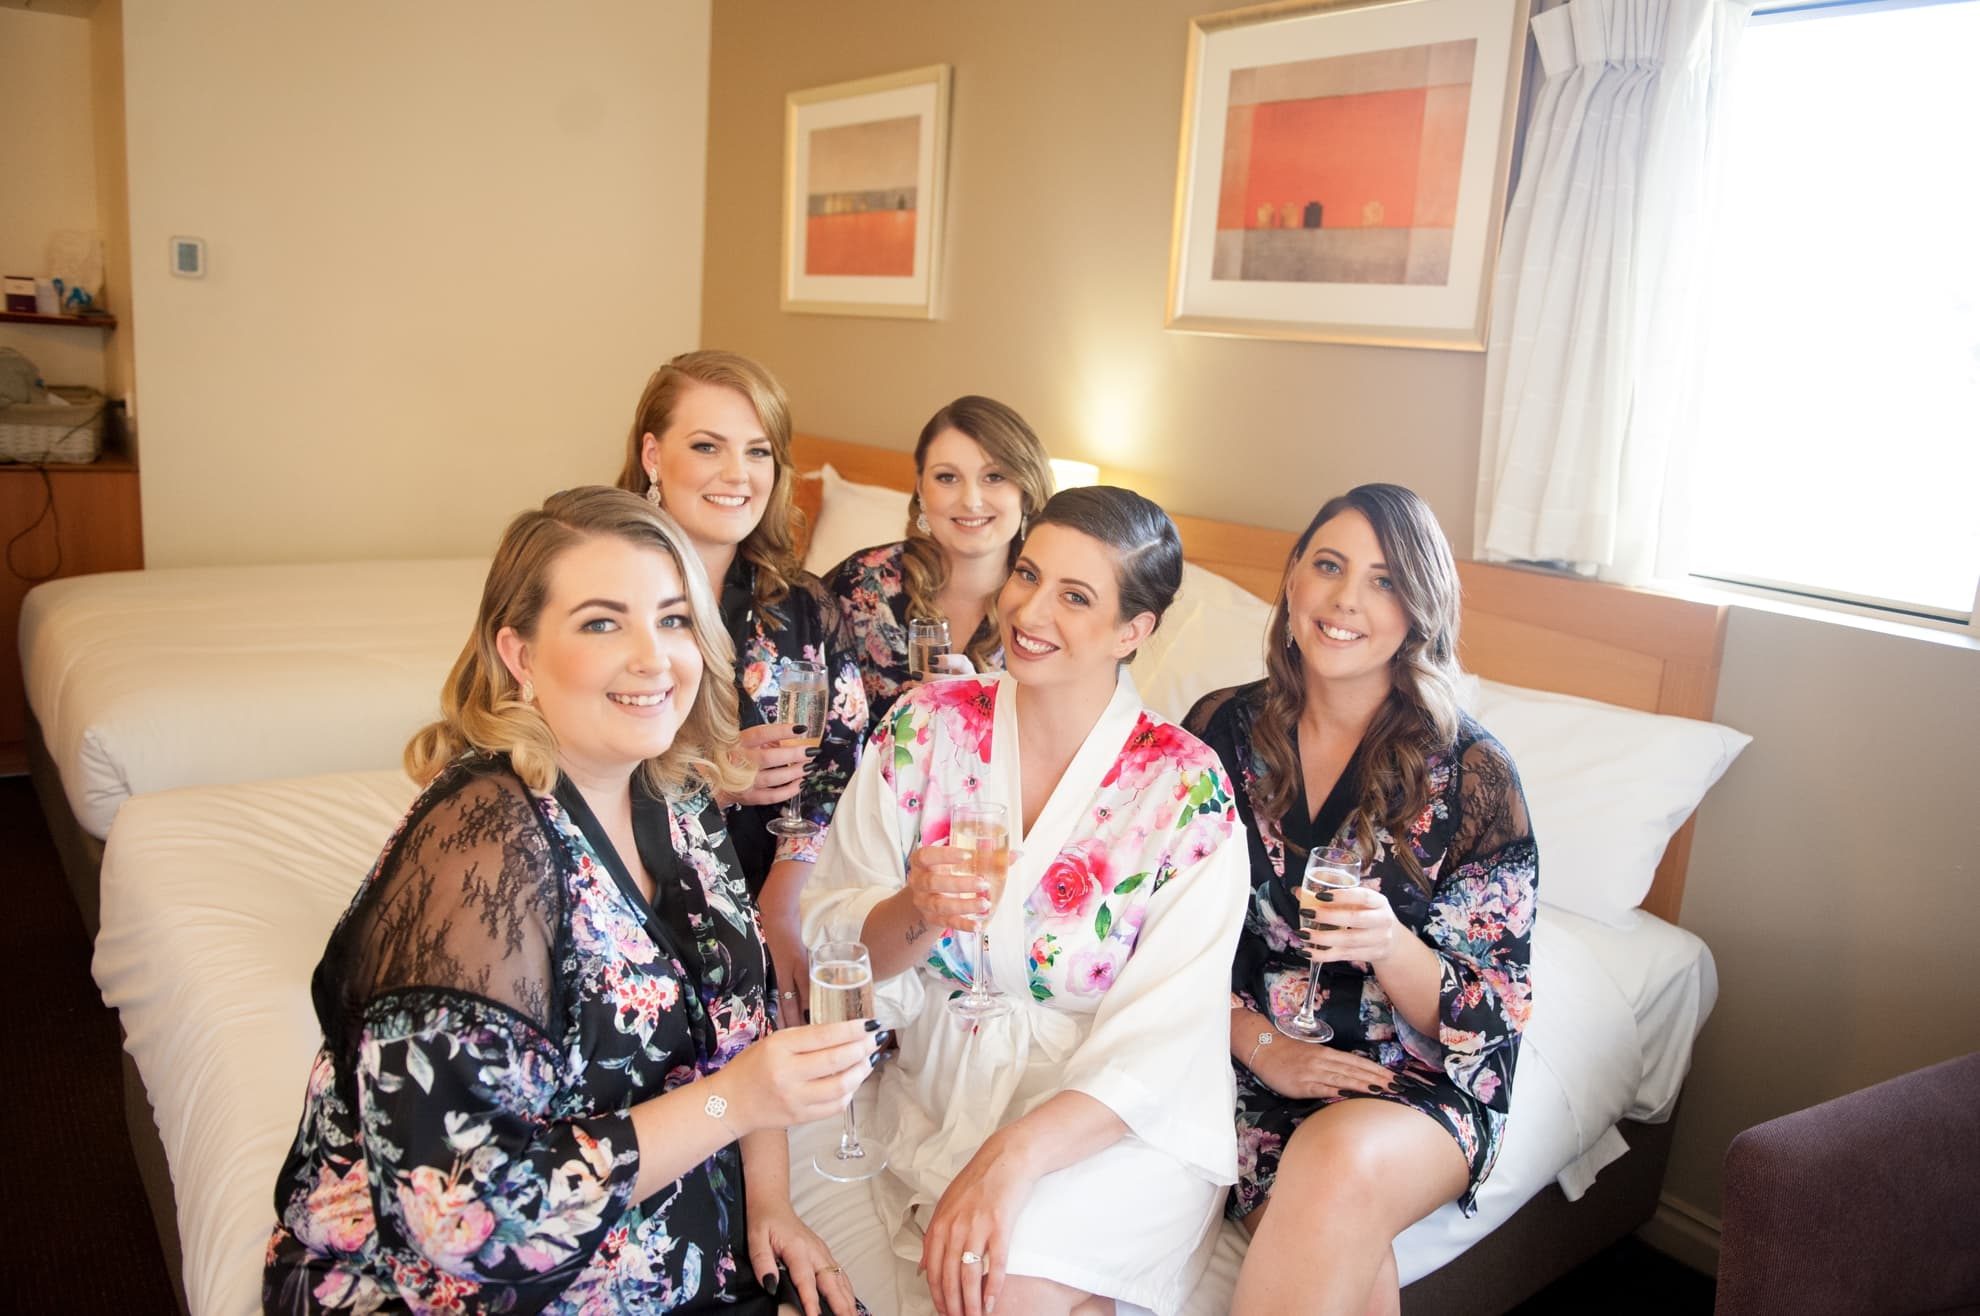 bride-to-be-with-her-bridesmaids-in-their-robes-smiling-before-they-get-dressed